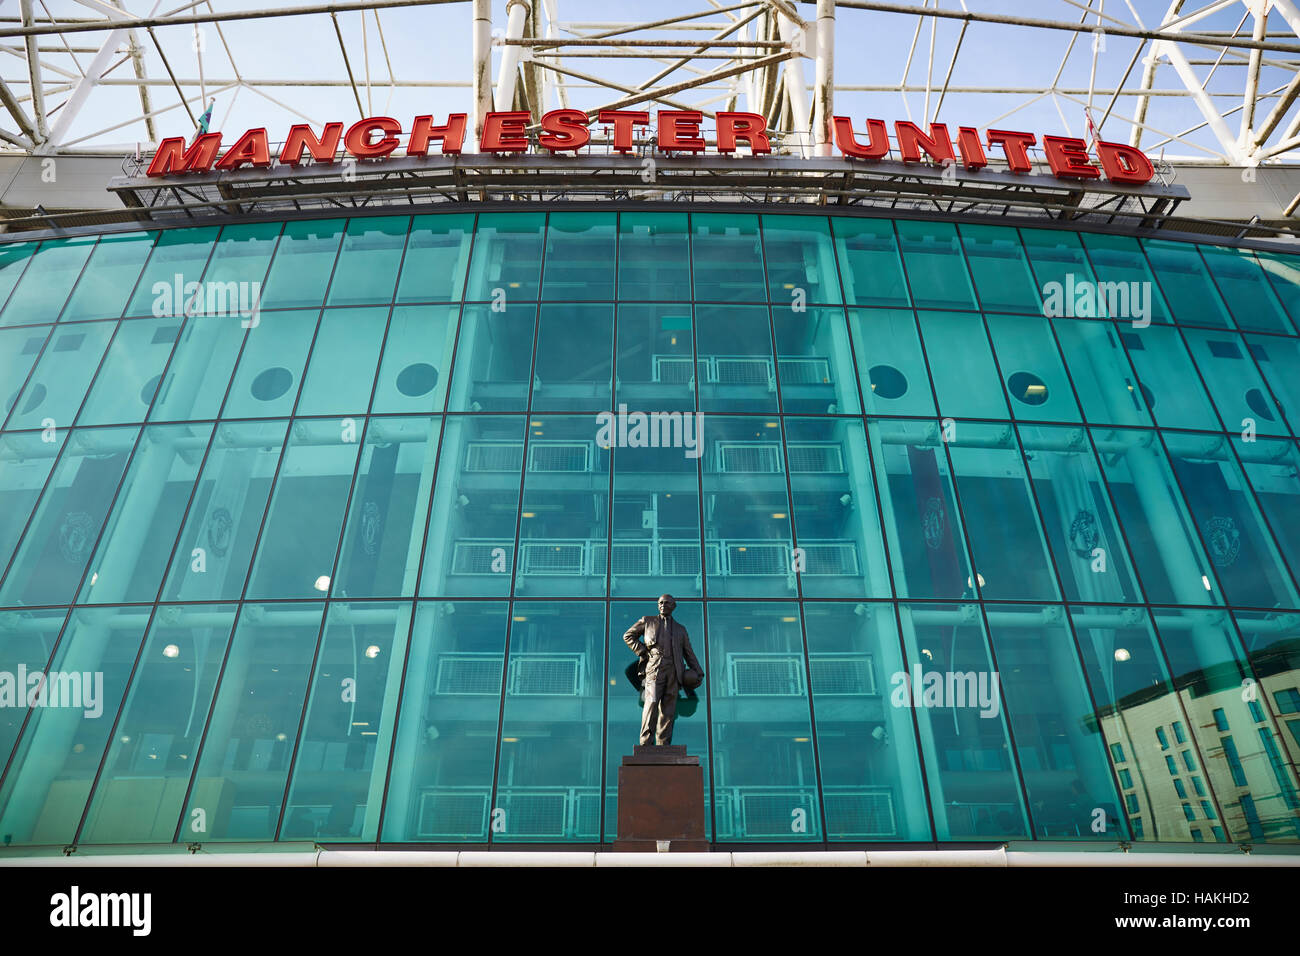 Manchester United stadium canal   MUFC stadium old Trafford  exterior entrance  copyspace exterior architecture - Stock Image